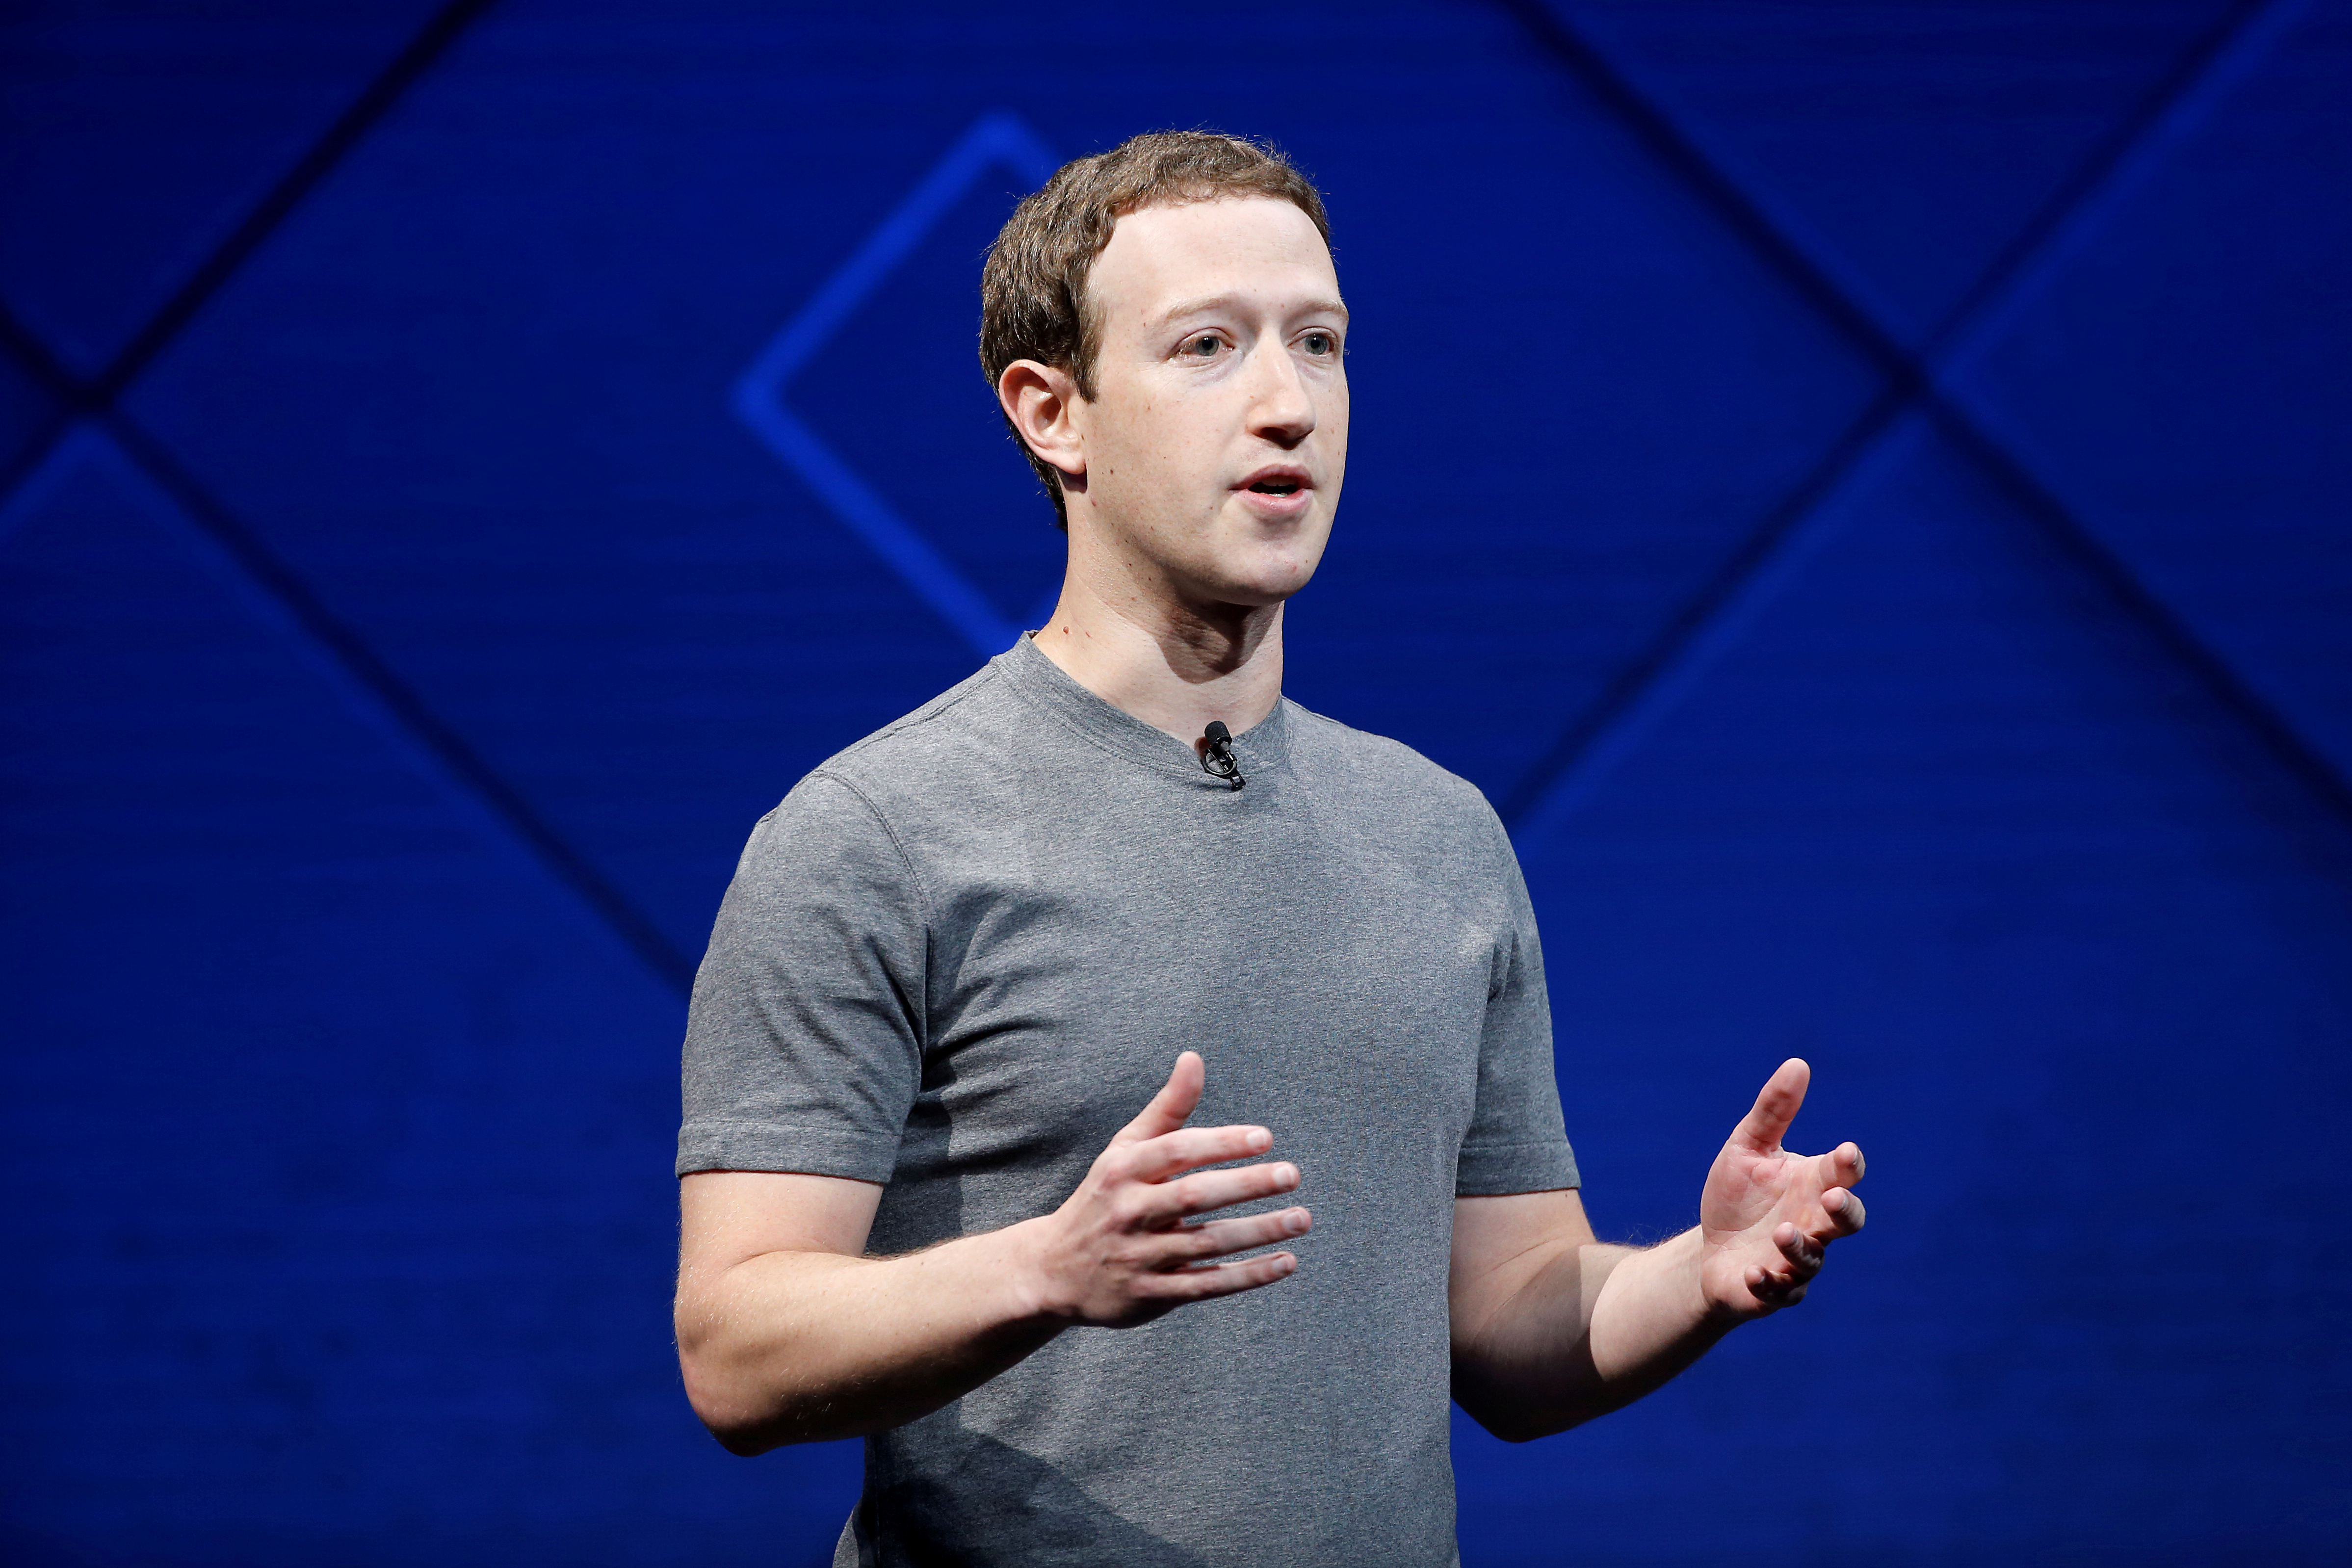 Facebook CEO Mark Zuckerberg at the annual Facebook F8 developers conference in San Jose, Calif. on April 18, 2017.